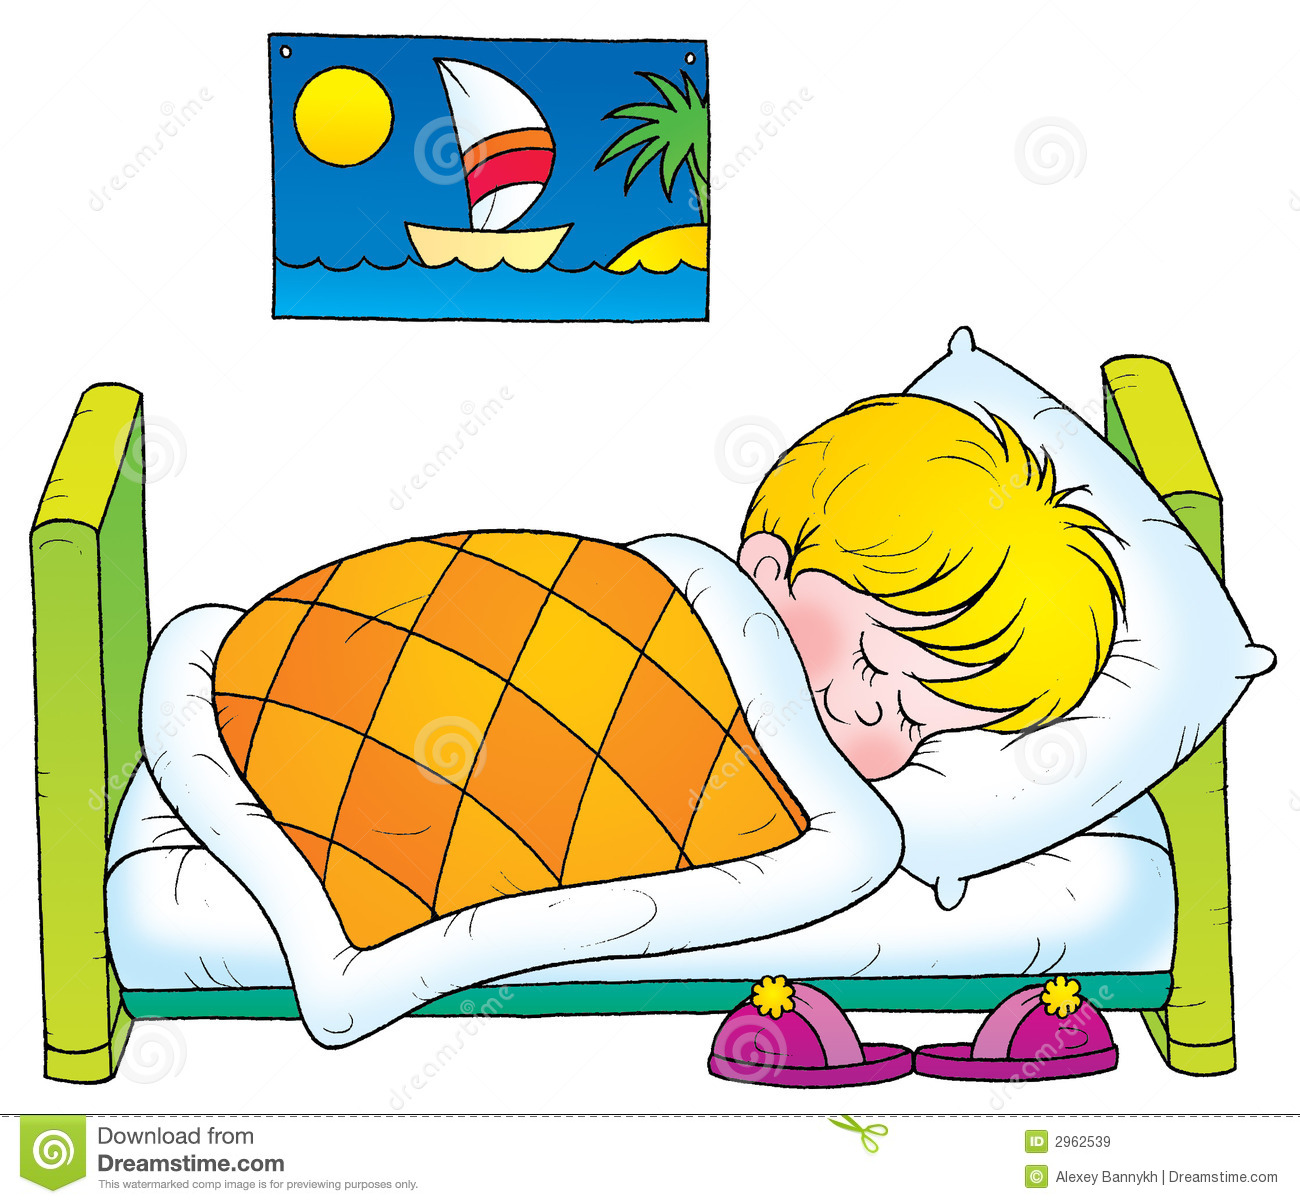 Blanket clipart nap Collection sleep Clipart Free clipart